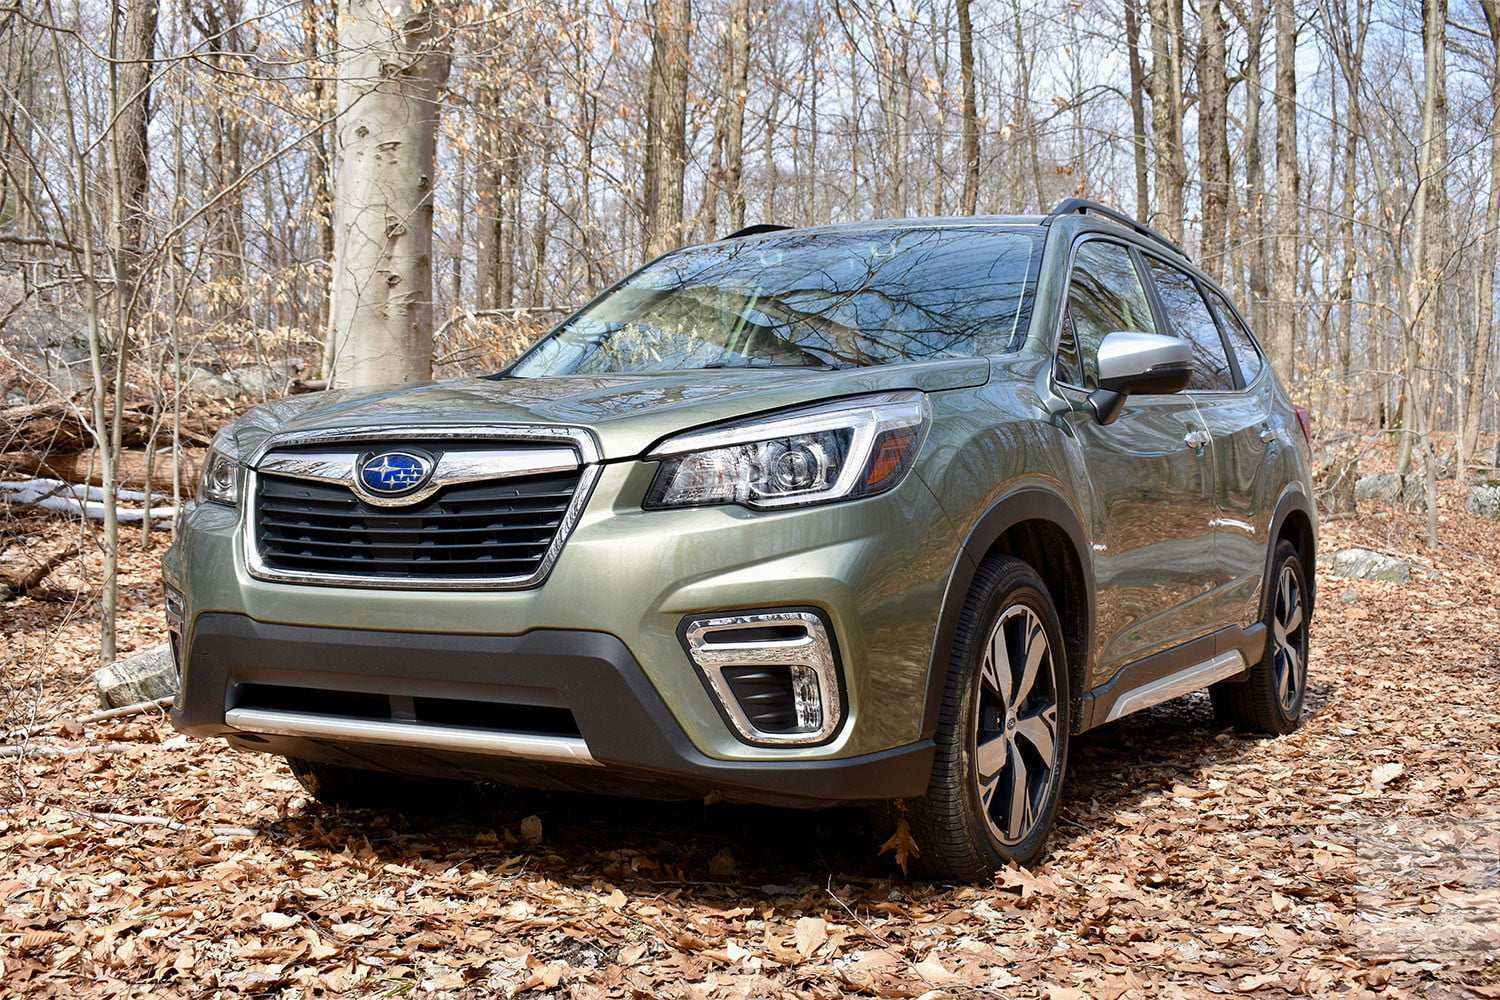 77 All New 2019 Subaru Forester Prices